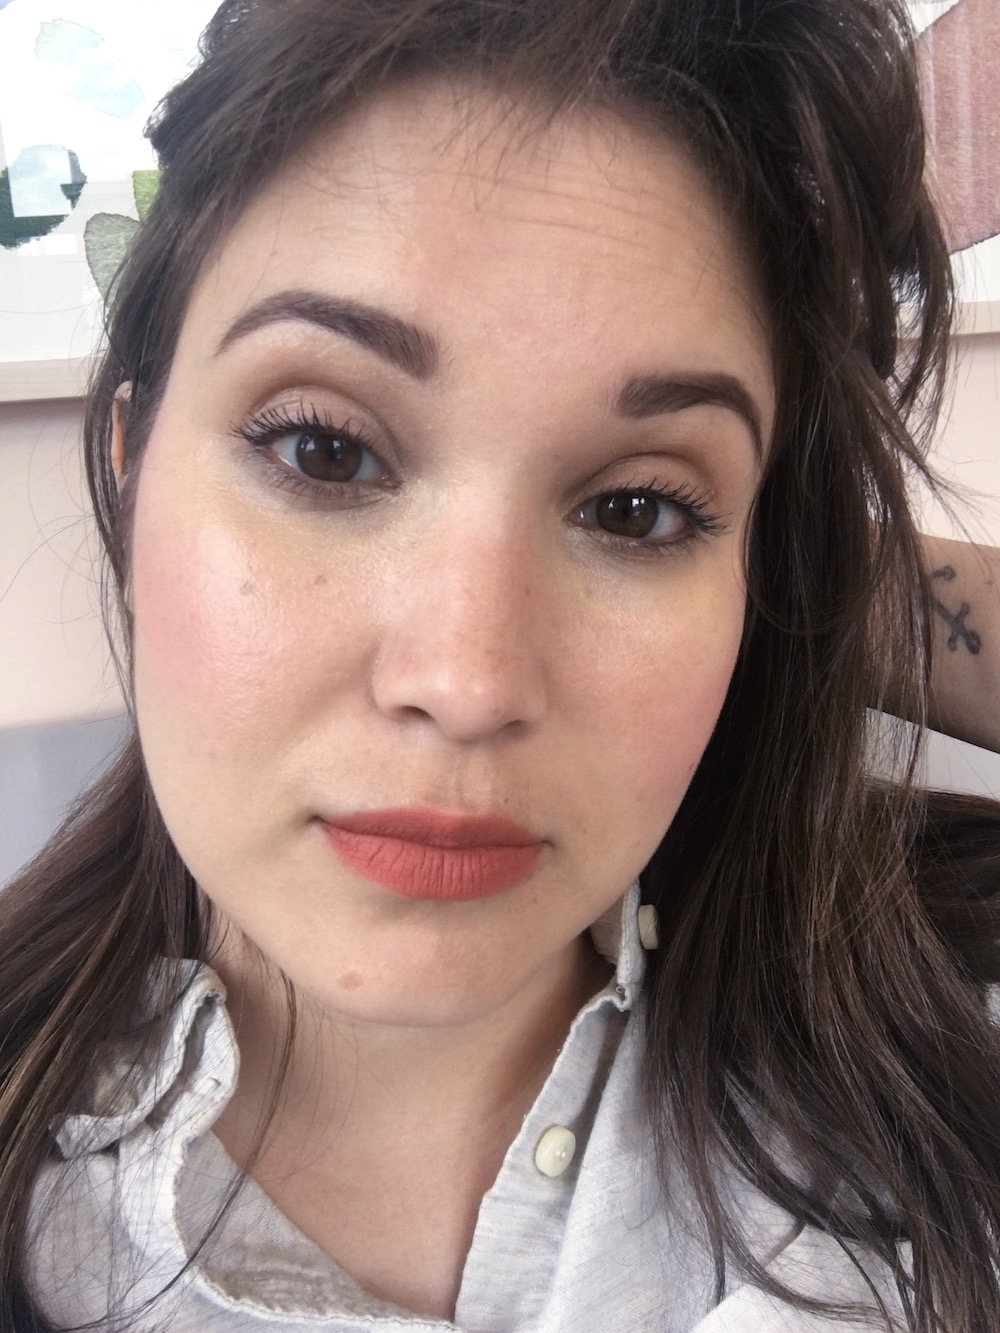 I tried Fillerina, a non-injectable alternative to Botox